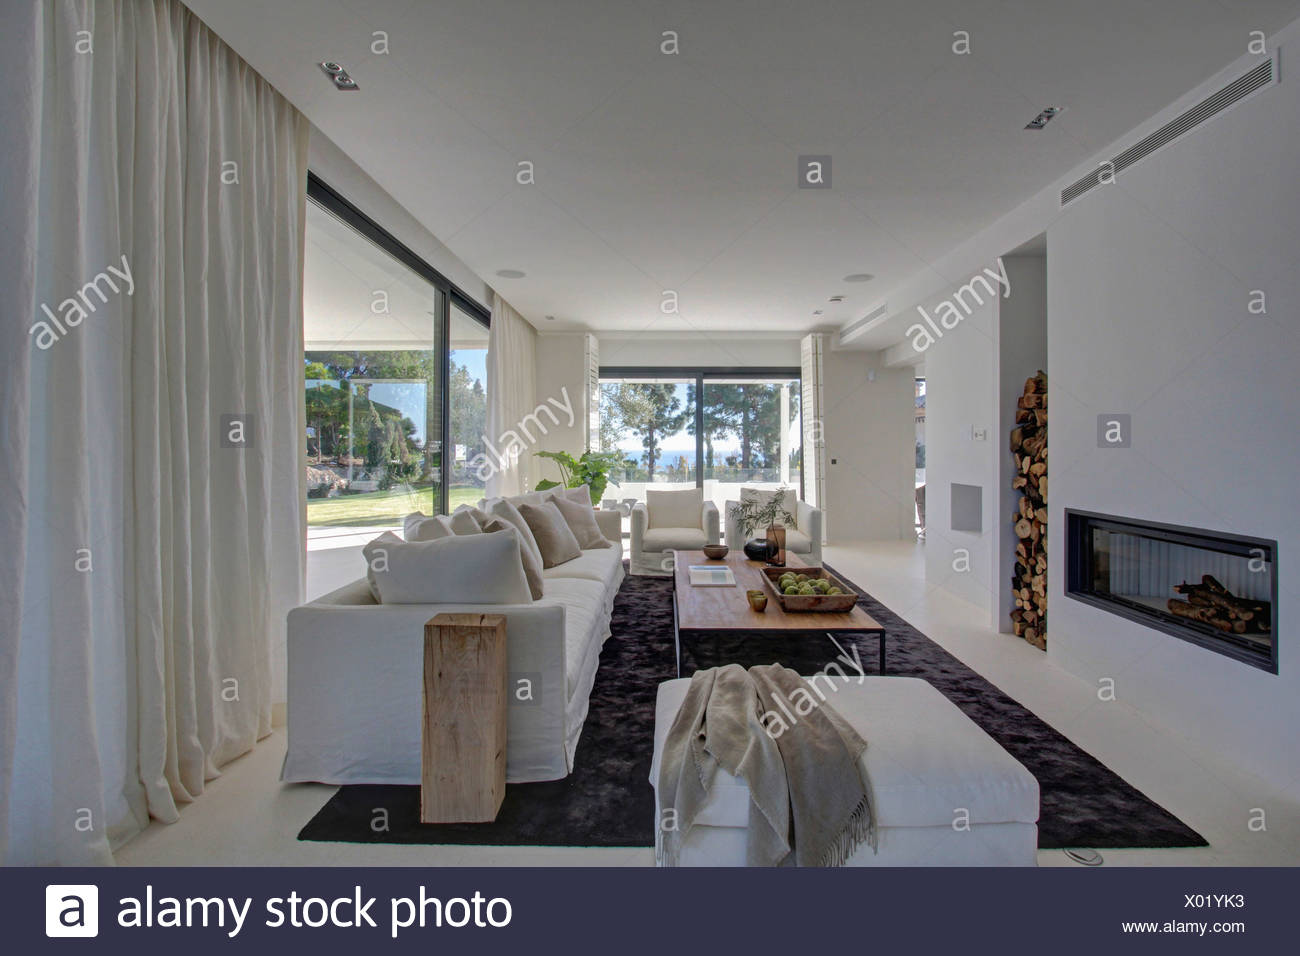 White Drapes On Large Windows In Modern White Living Room With White Sofa And Stool And Gray Carpet Stock Photo Alamy